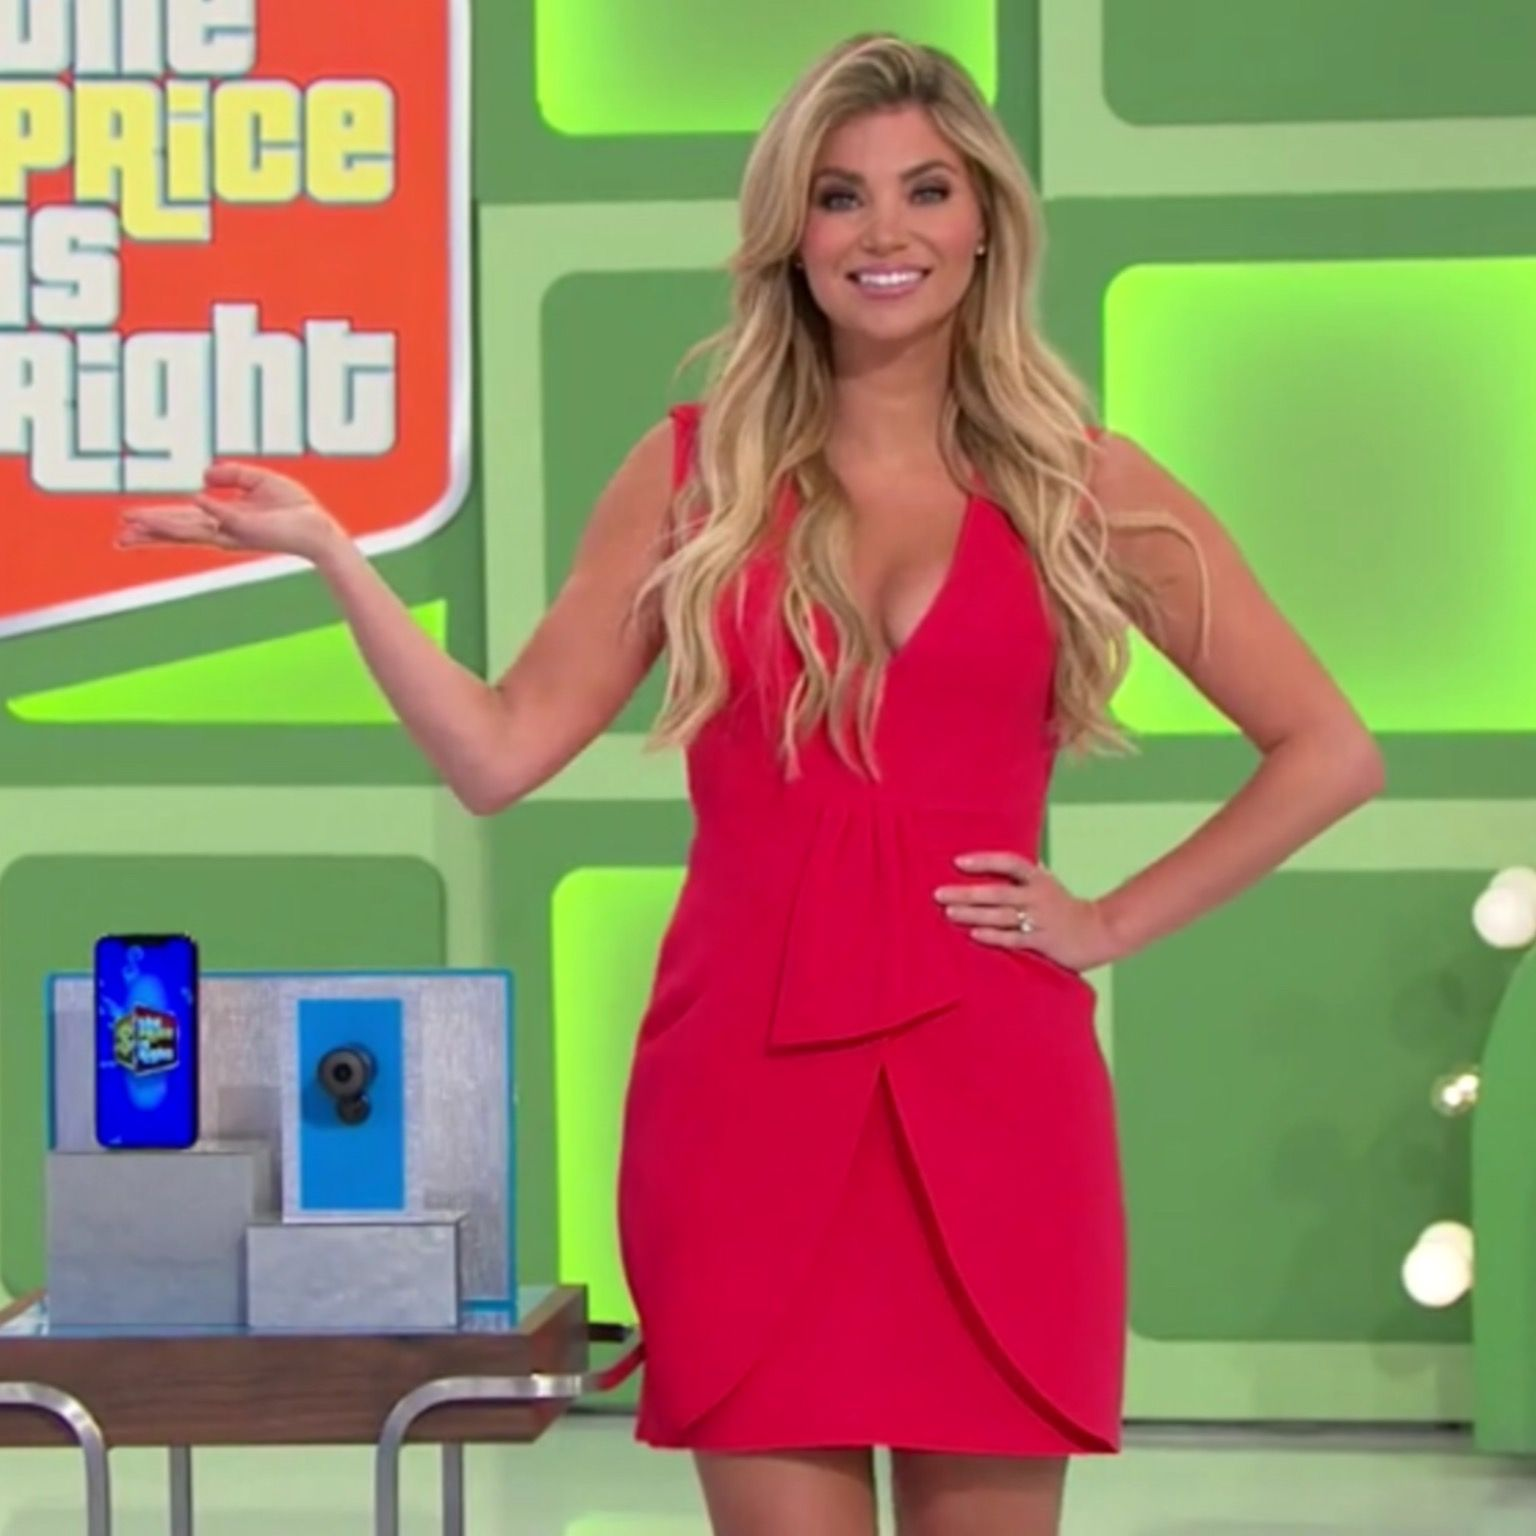 Amber Lancaster From The Price Is Right amber lancaster - the price is right (1/3/2019) ♥️ | amber